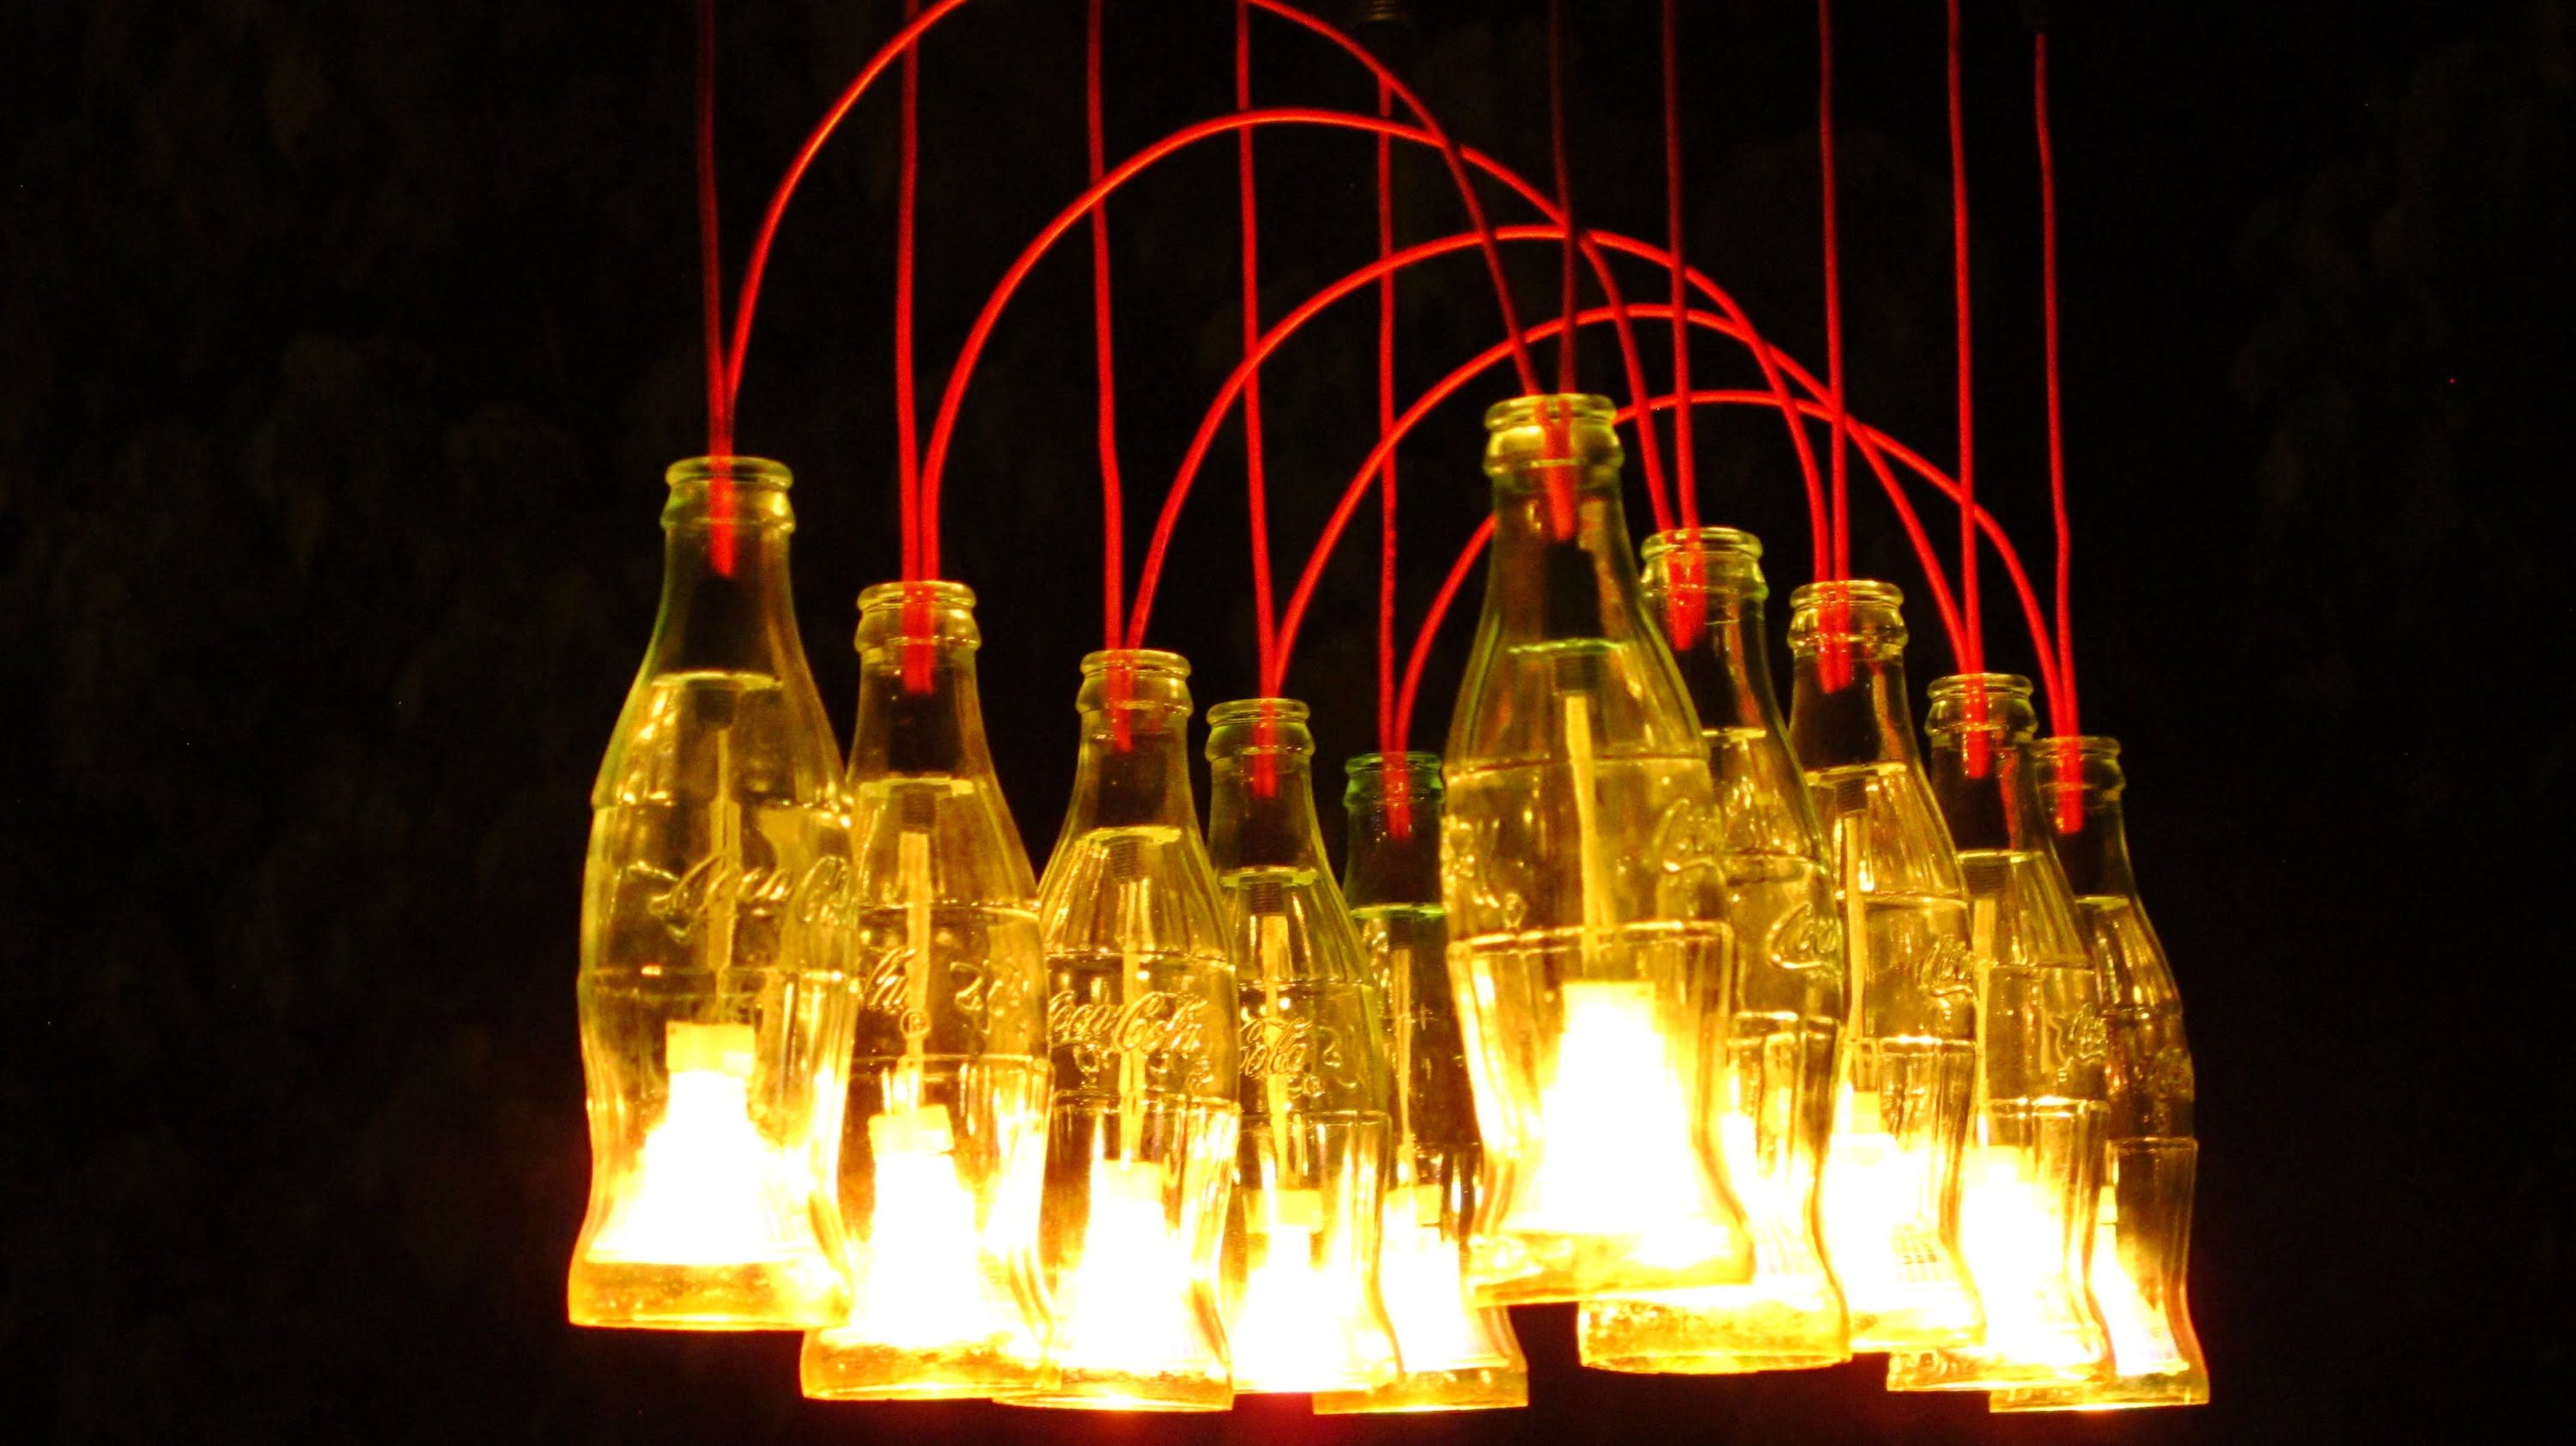 Recycled coca cola bottles made into a chandelier diy pipepallet make a coca cola chandelier with recycled bottles arubaitofo Choice Image